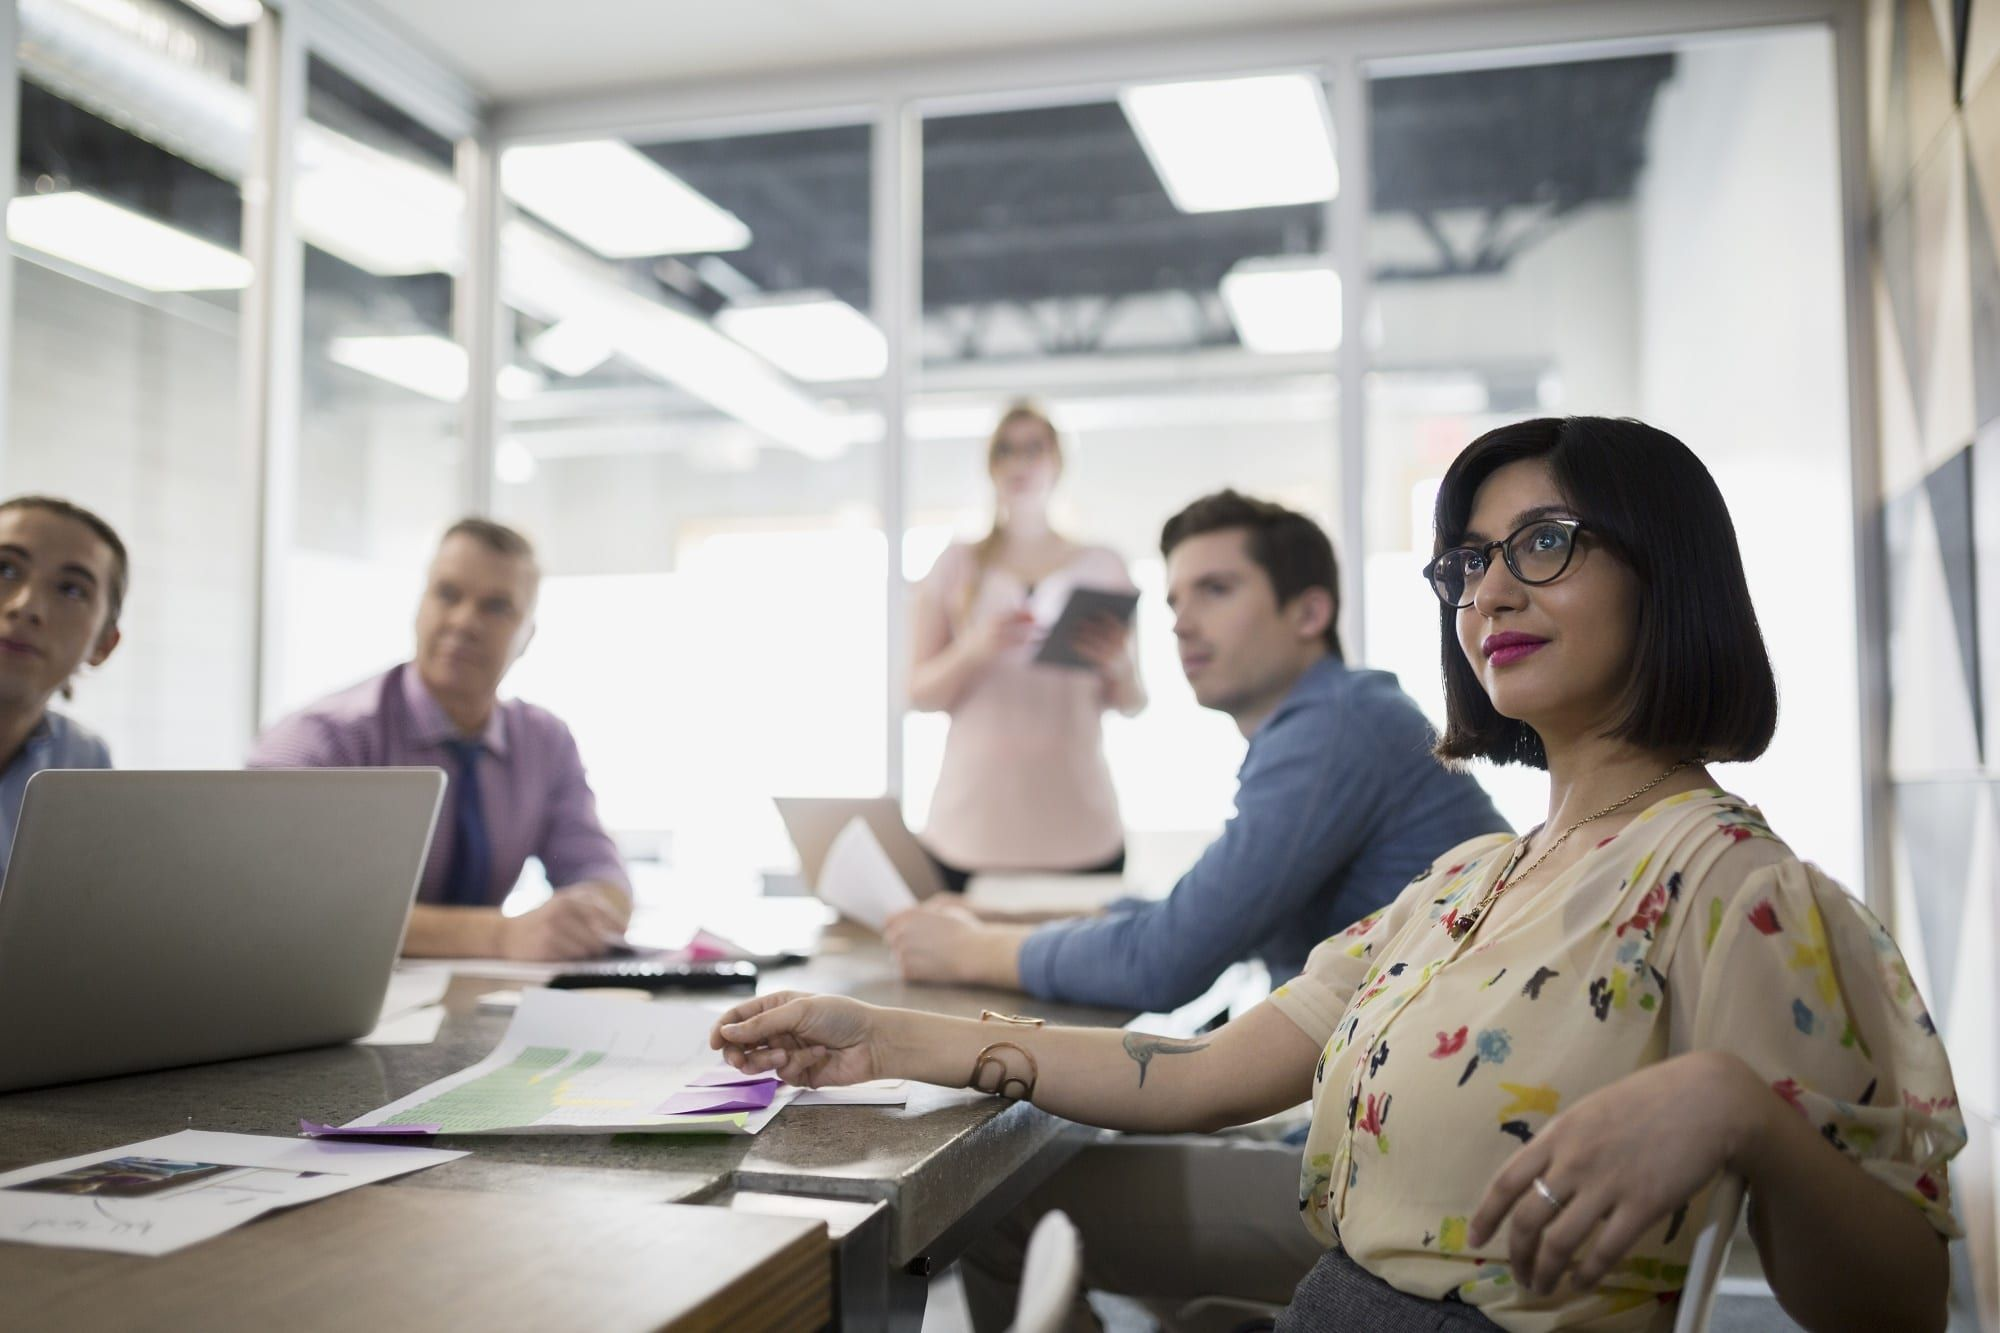 The 10 most indemand soft skills to master if you want a